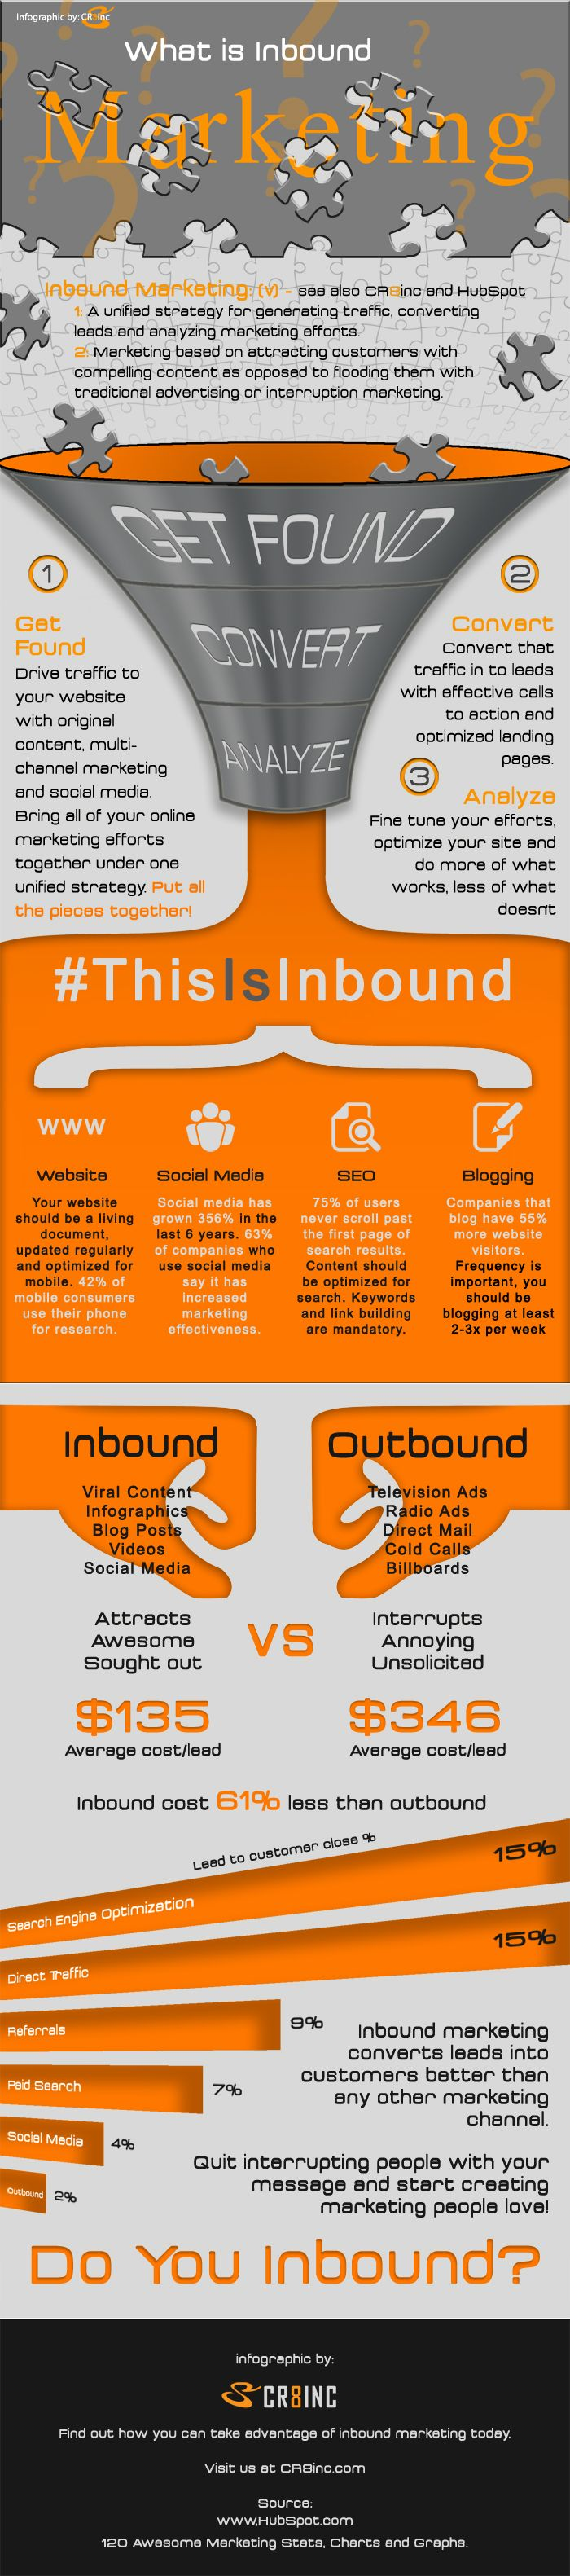 What is Inbound marketing? #infographic  Great info!